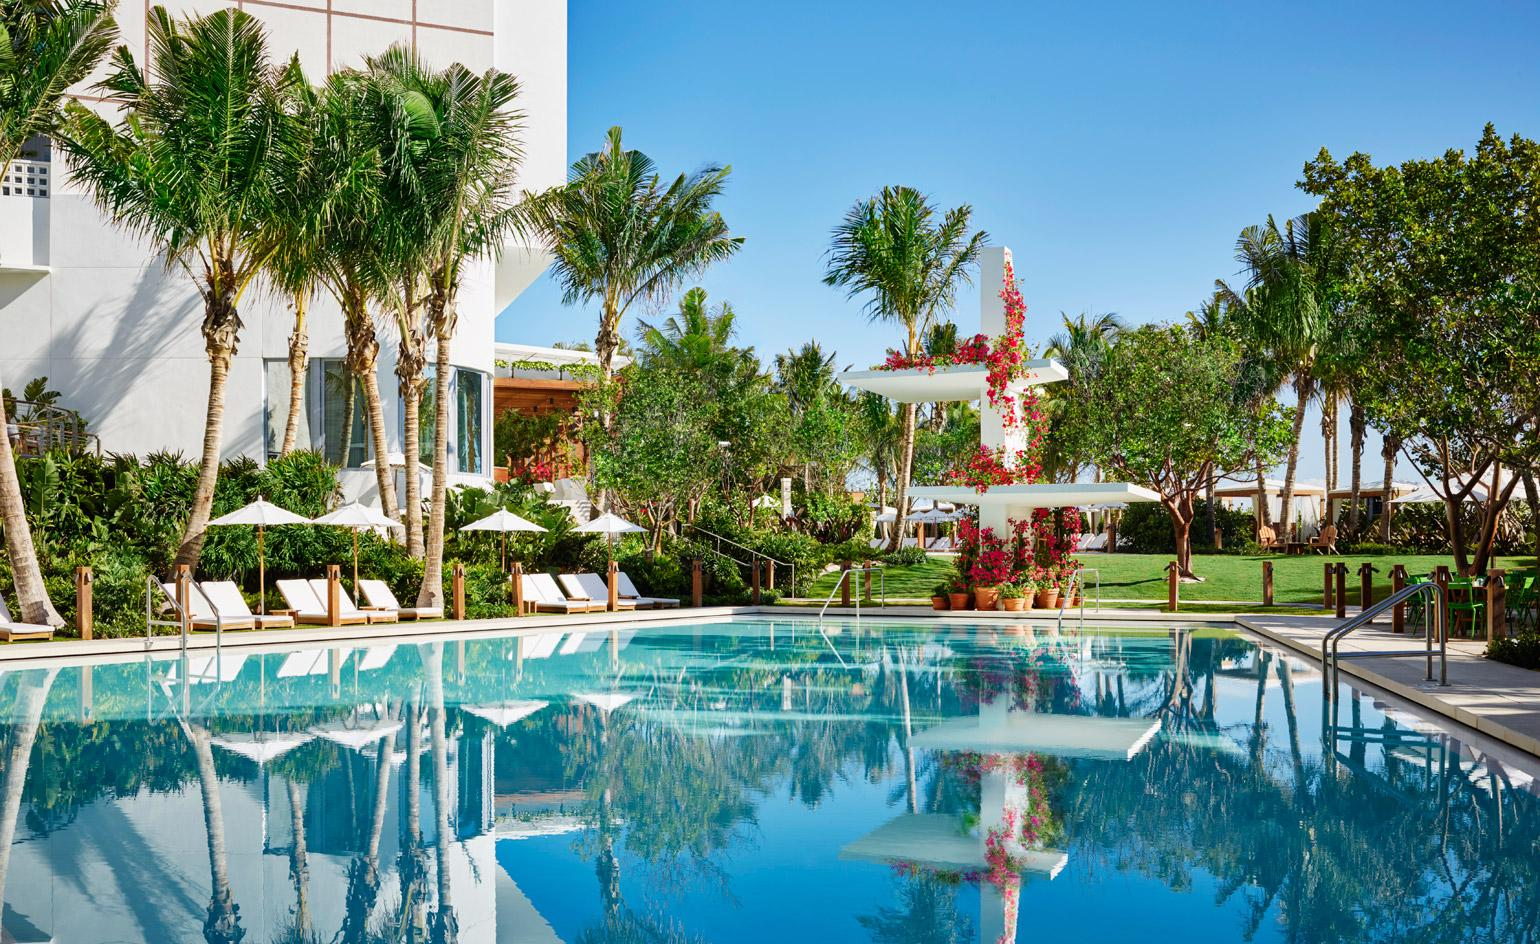 Luxury Hotels In Miami Fl